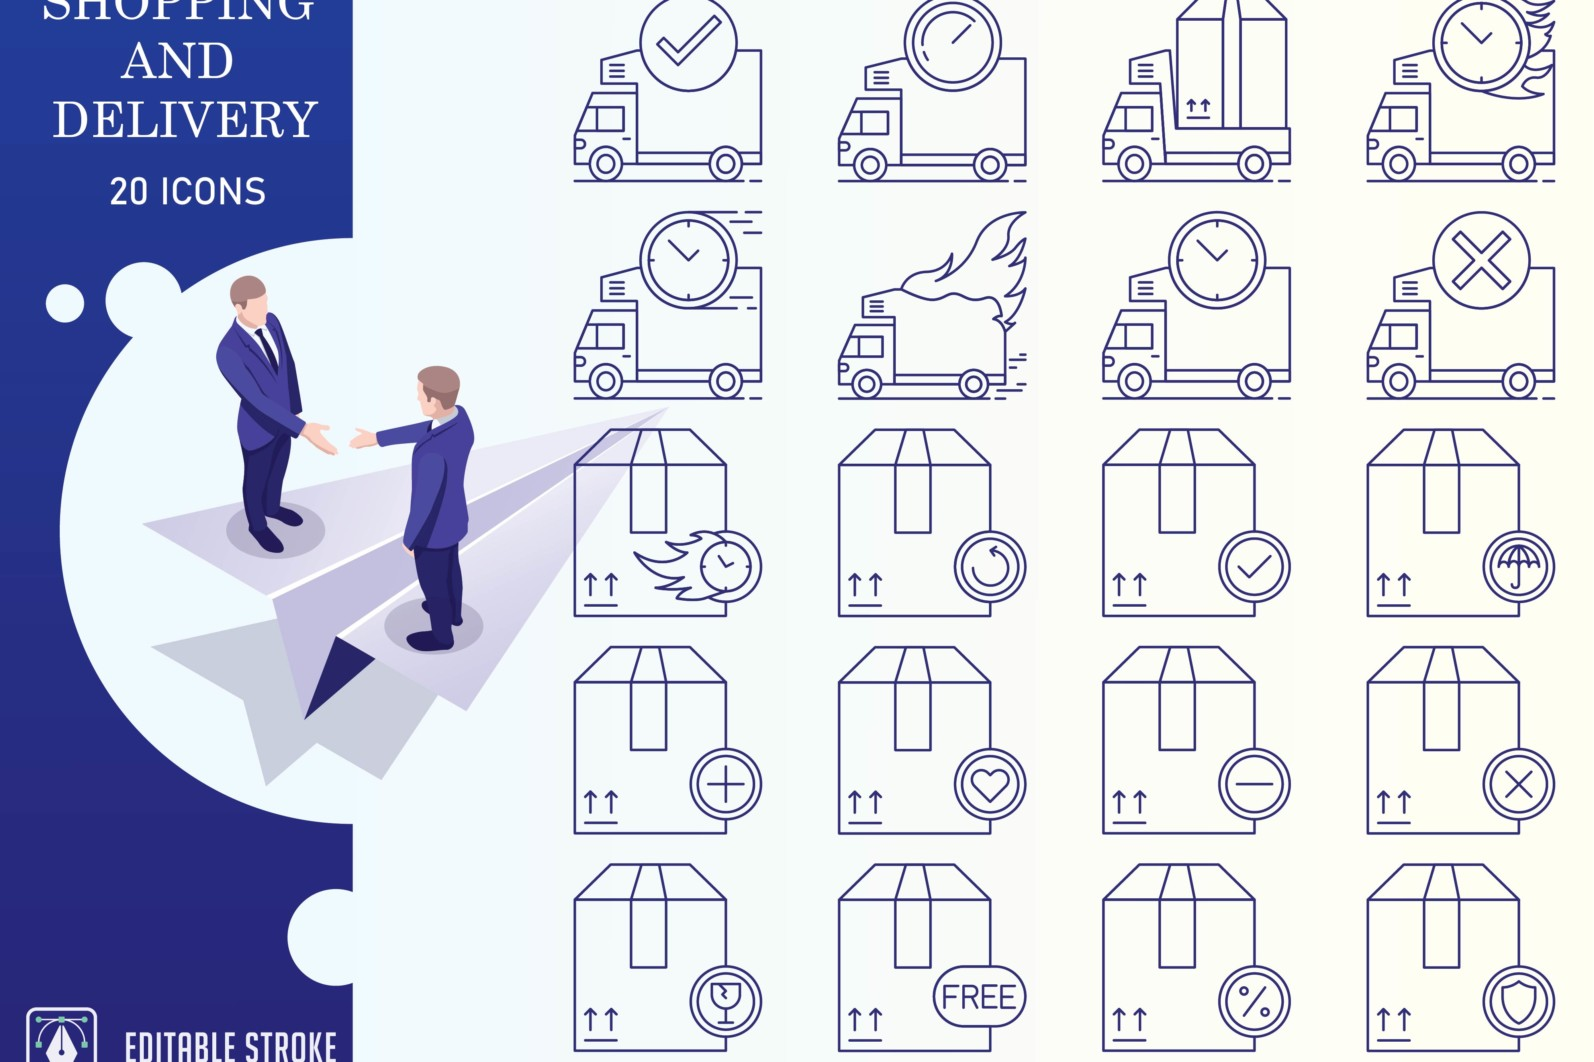 Outline : Shopping and E-commerce - Online Shopping Iconset 01 scaled -